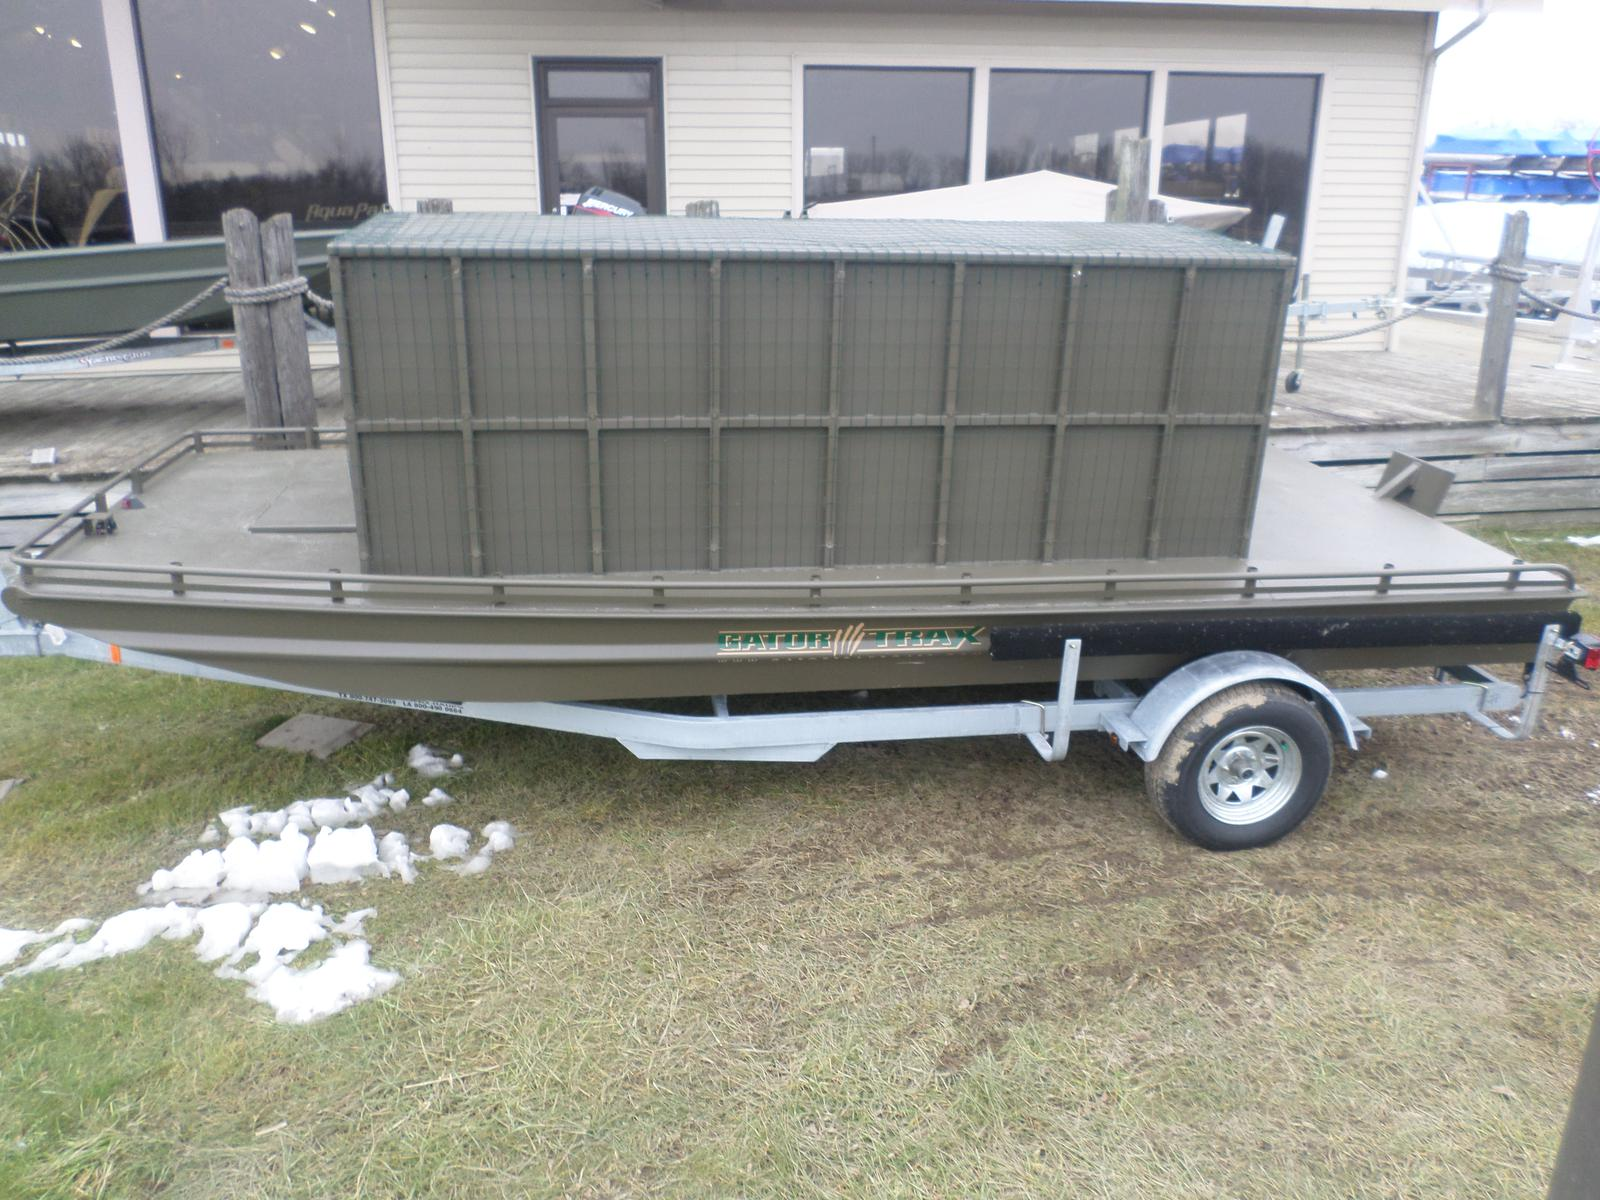 Gator Trax 18 X 8 GATORSCAMP FLOATING BLIND